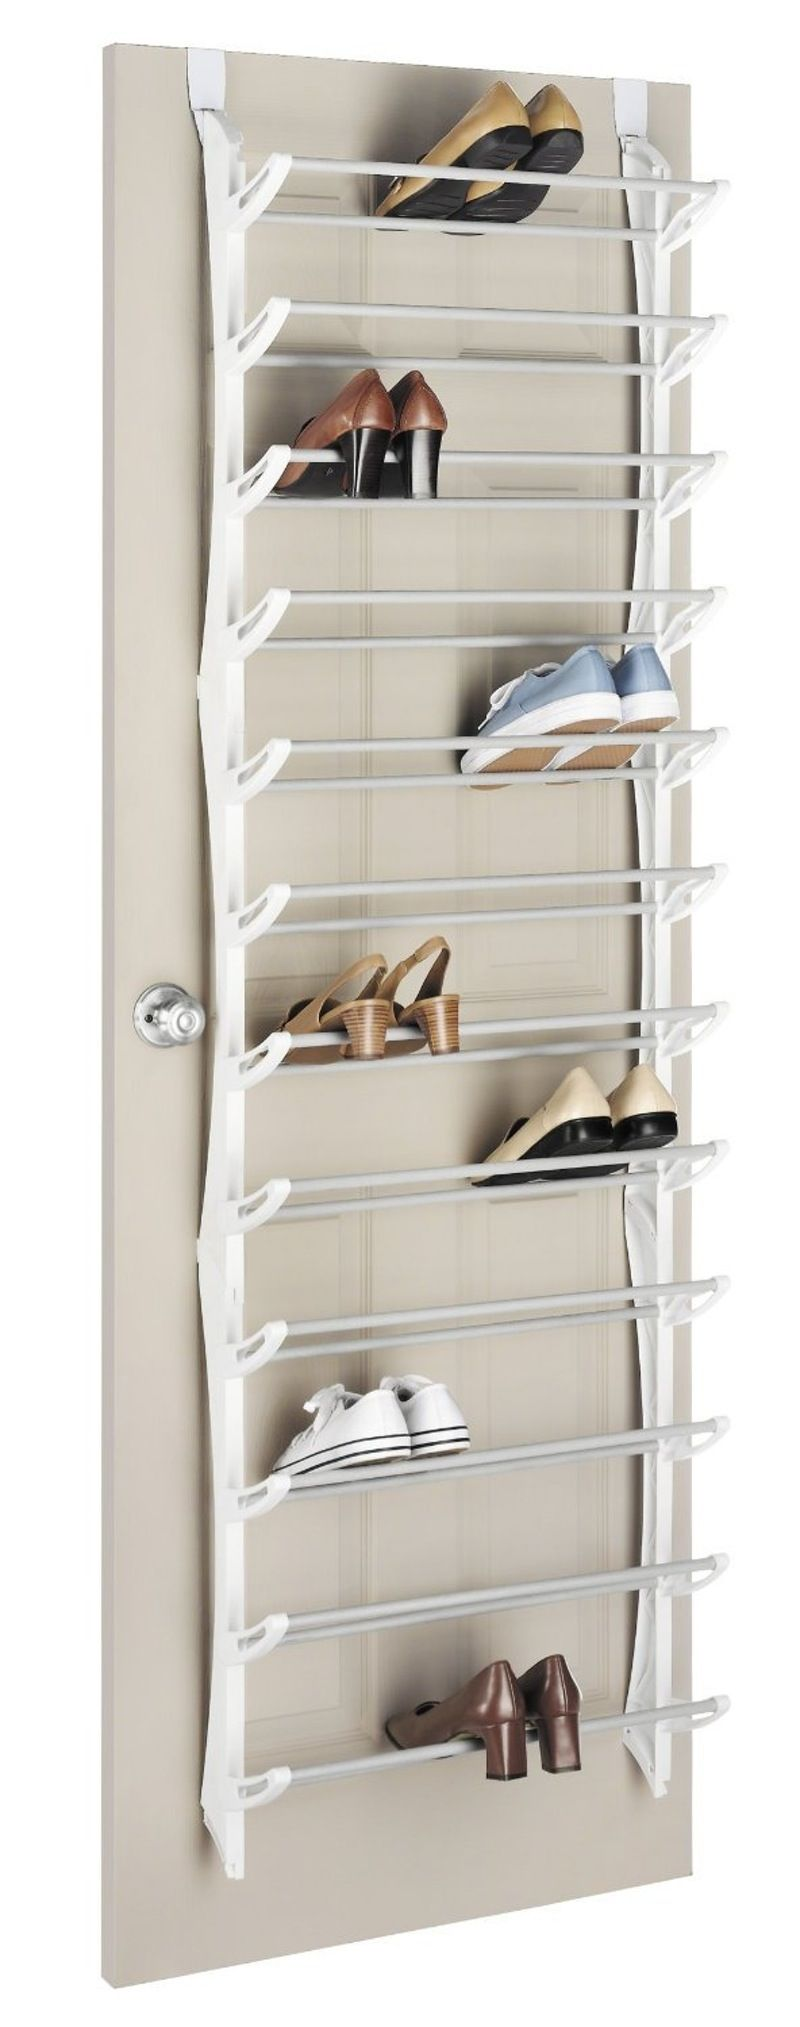 10 Must-Have Solutions for Shoe Storage | Apartments, Storage and ...